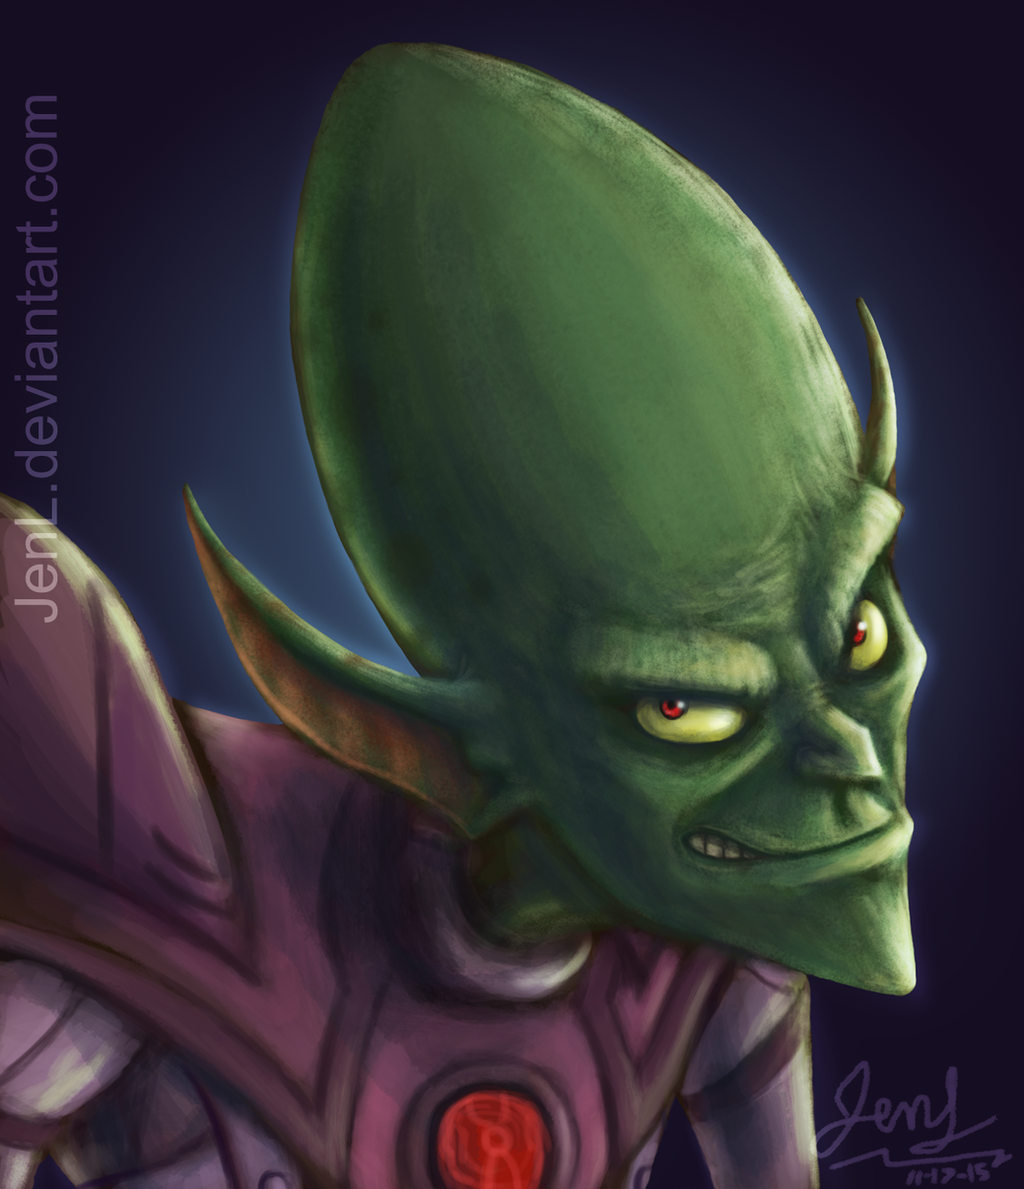 http://img10.deviantart.net/813b/i/2015/323/c/9/ratchet_and_clank___dr__nefarious_by_jenl-d9h908p.png